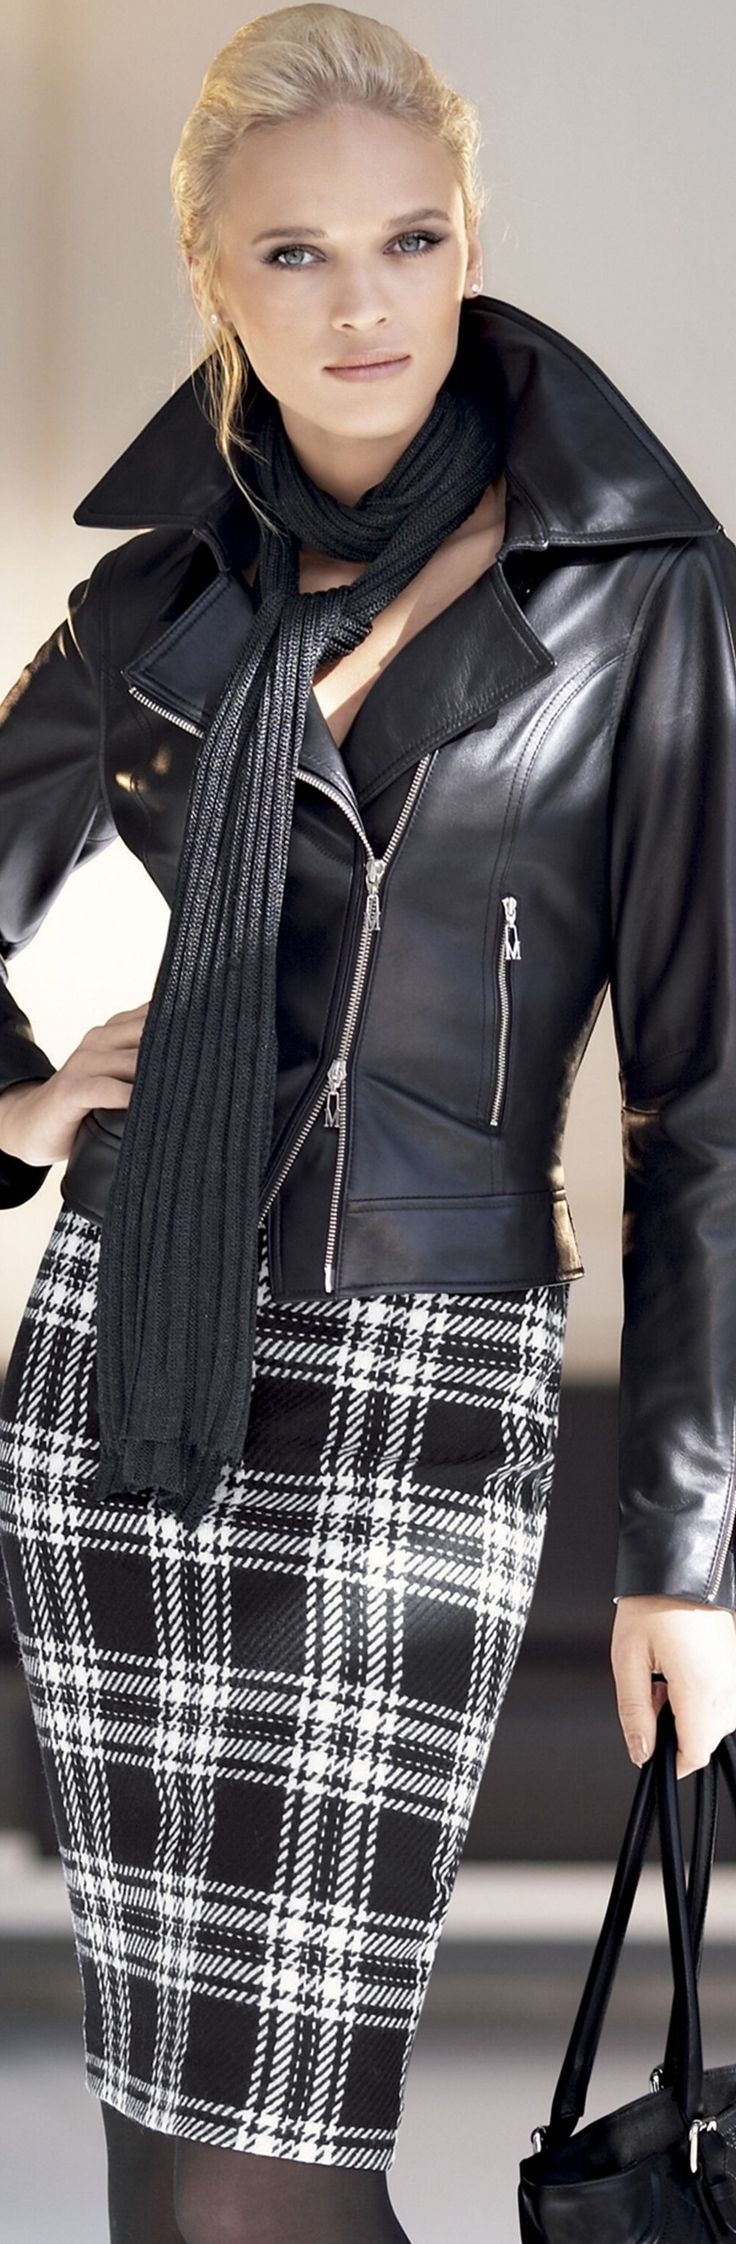 Anna Tokarska for Madeleine collection. OK not for an interview unless it's Cosmo, but I love this edgy look: Black Leather Jackets, Plaid Skirt Black And White, Plaid Skirt Outfit Fall, Plaid Skirts, Fashion Style, Black And White Plaid Outfit, Black